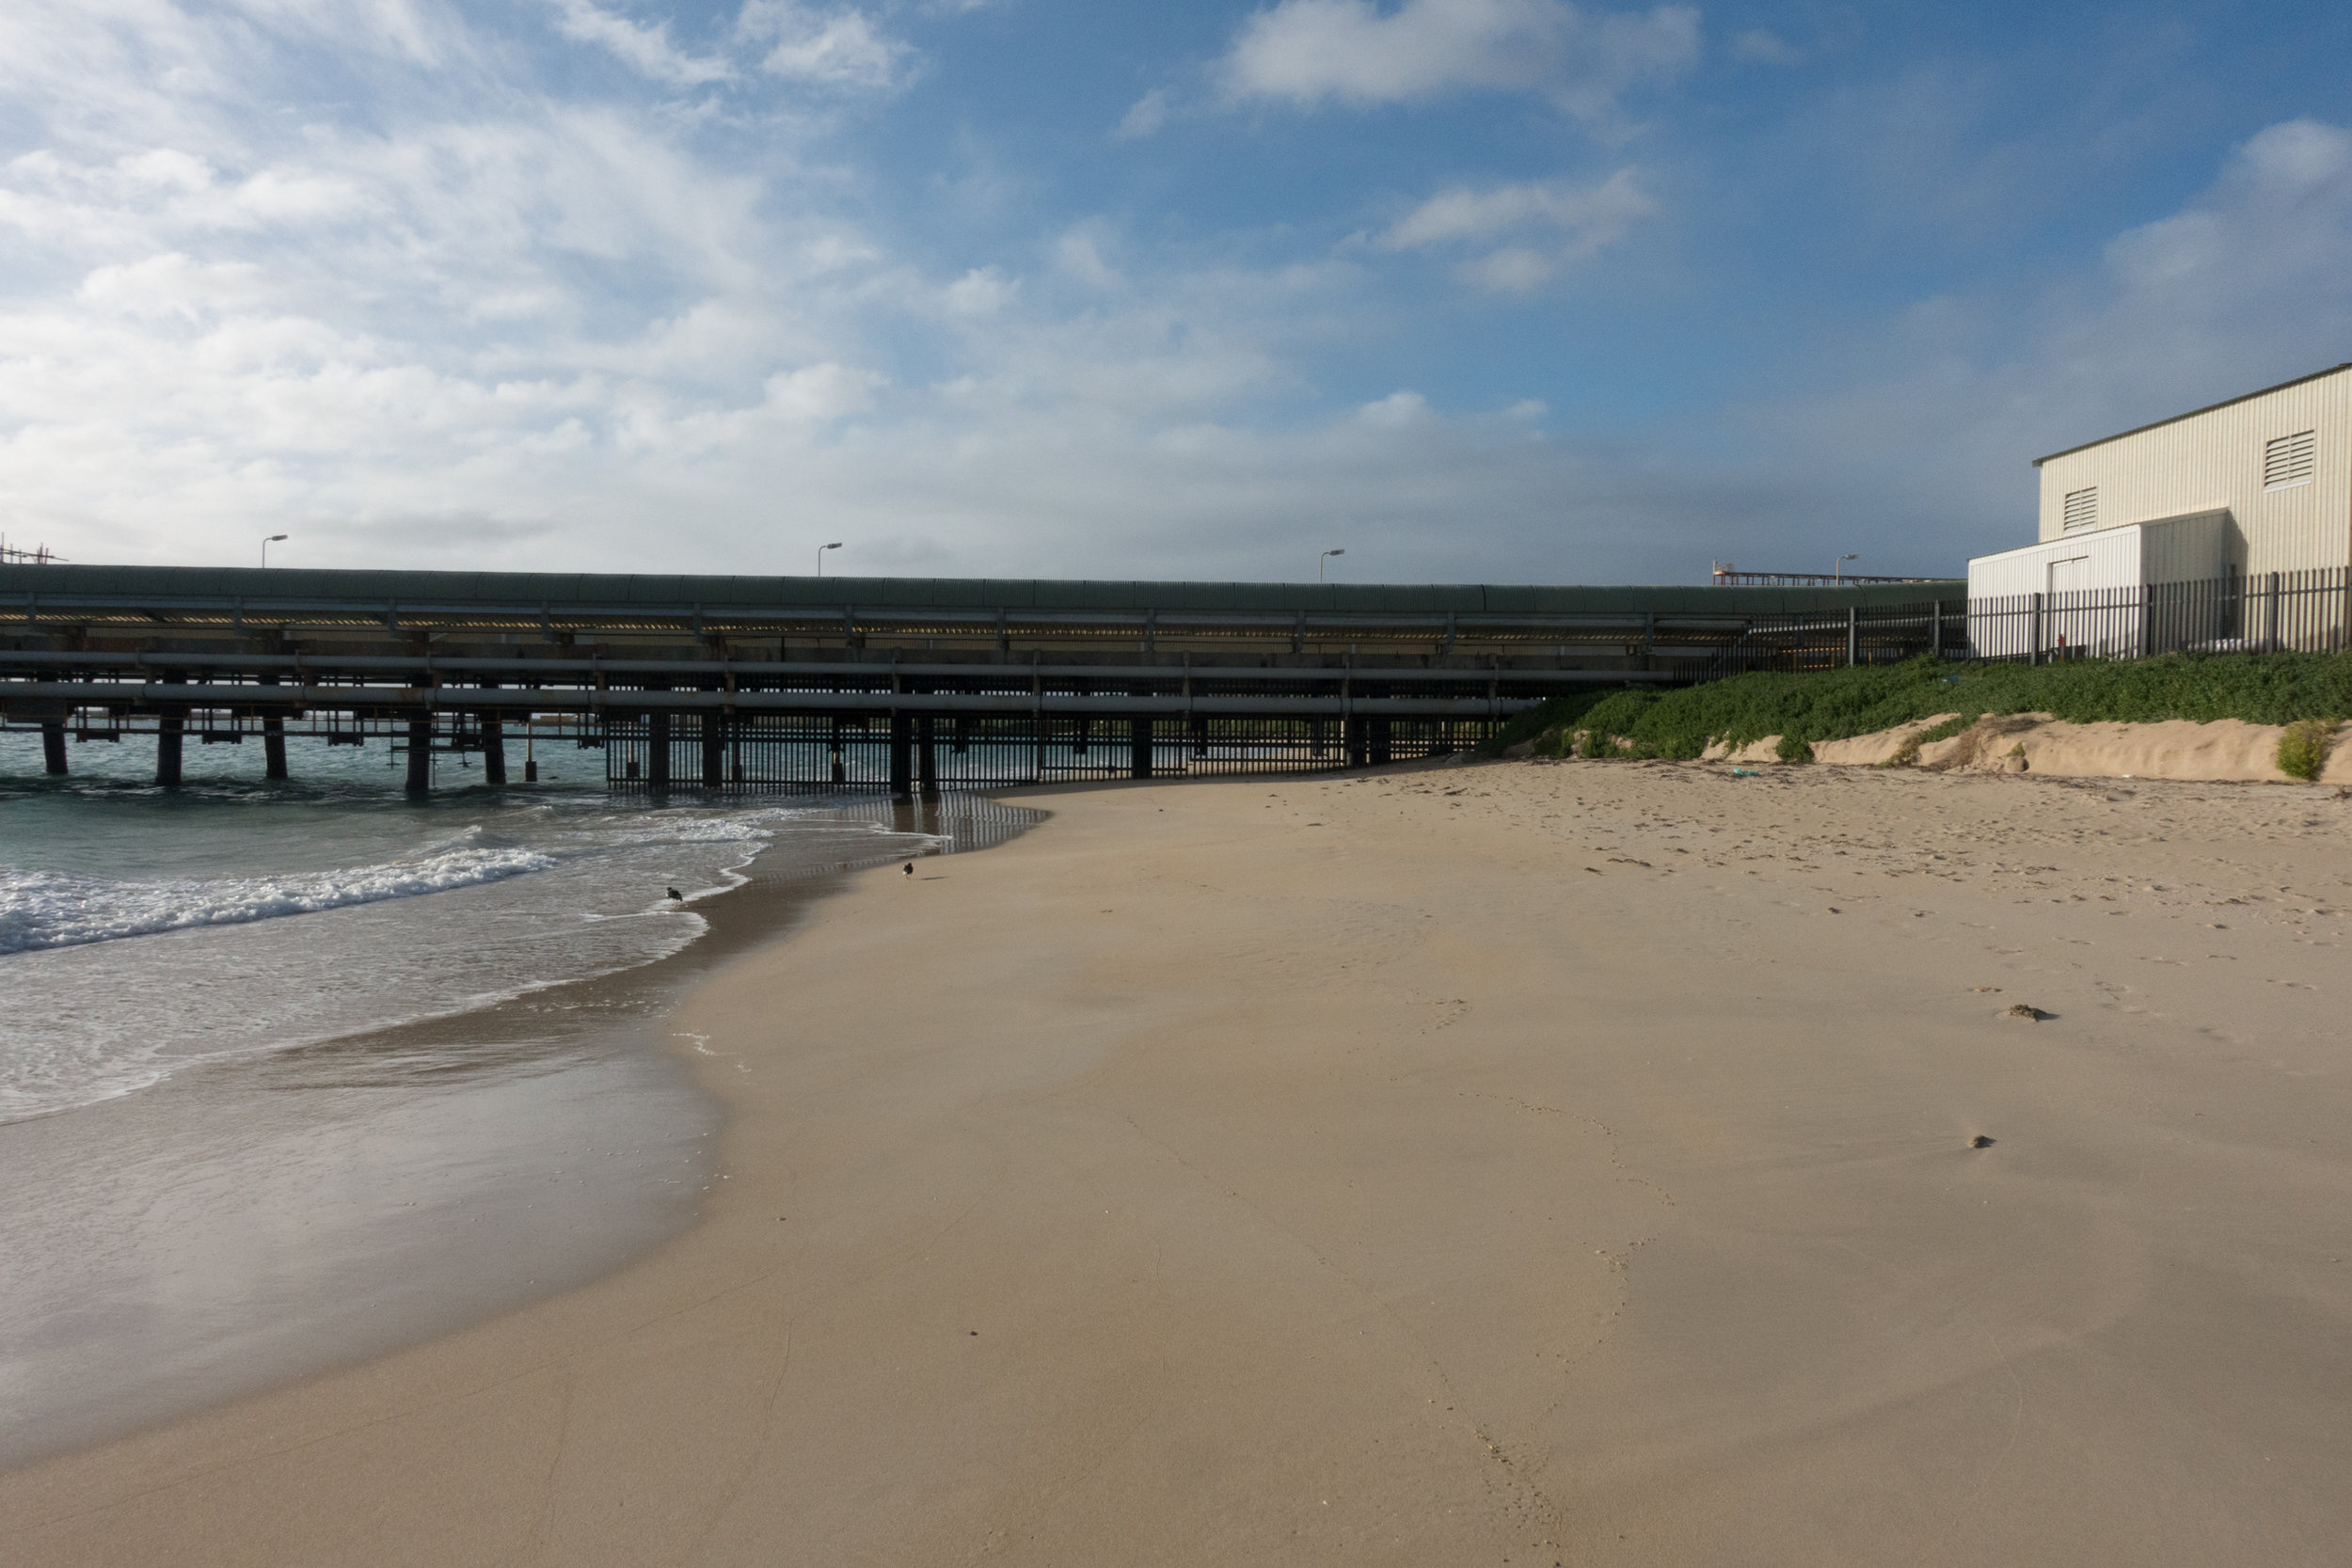 Plate 28: Close up of the jetty at the northern end of Kwinana Beach showing the gates underneath the jetty blocking further access and the property fence prevent access around it.